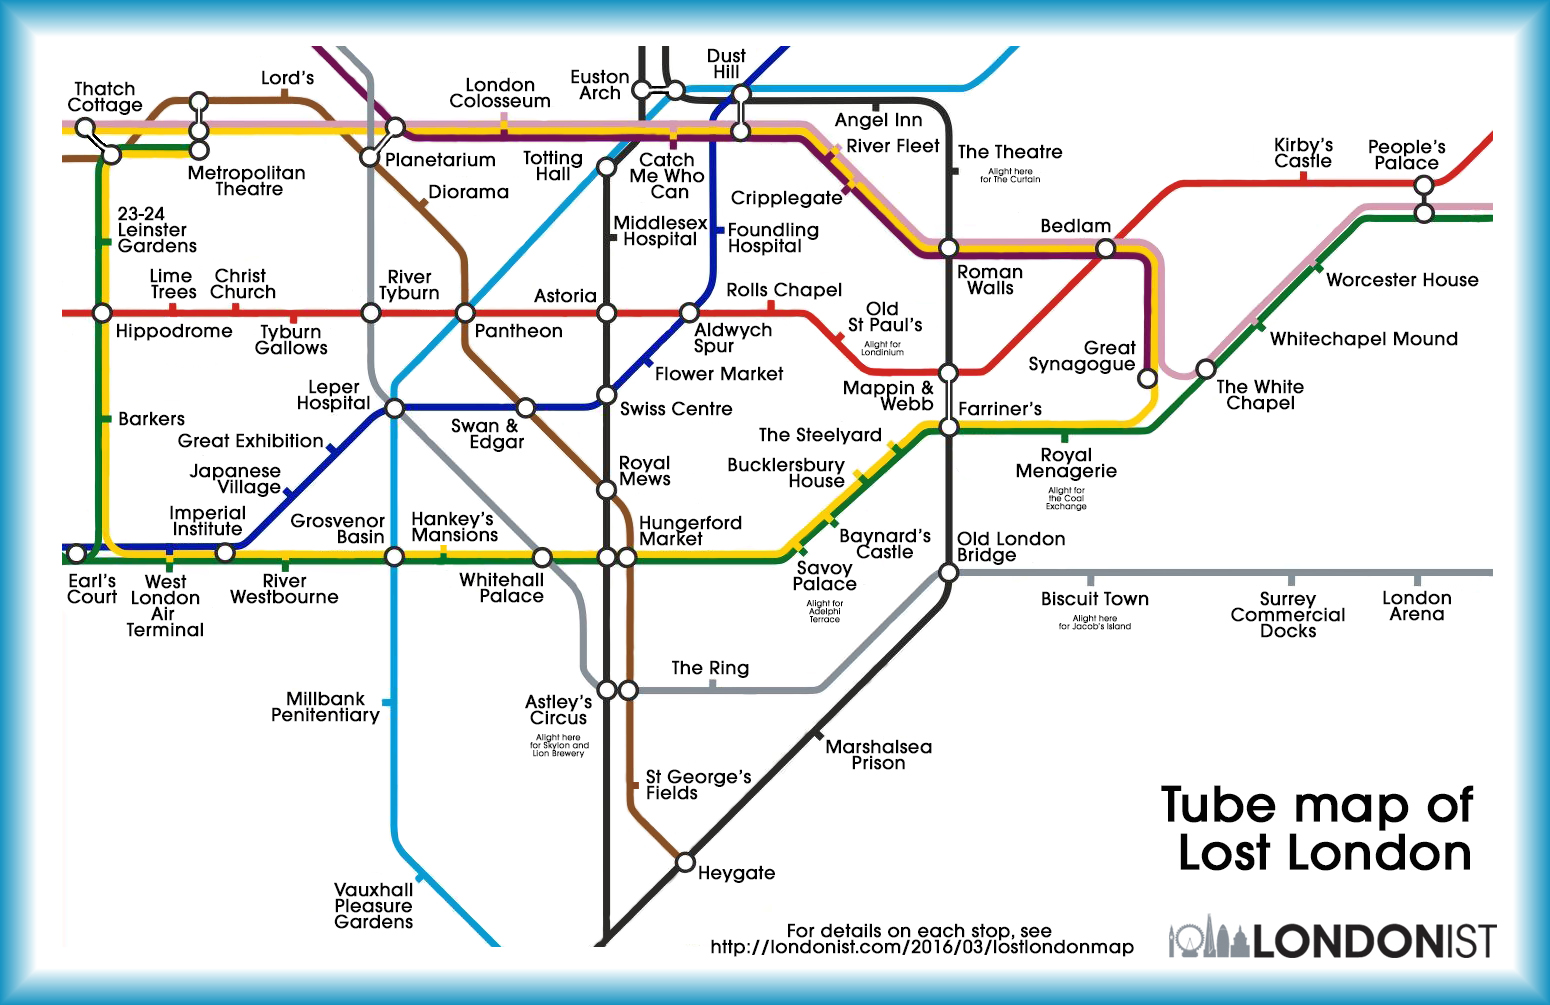 a tube map showing vanished buildings and features